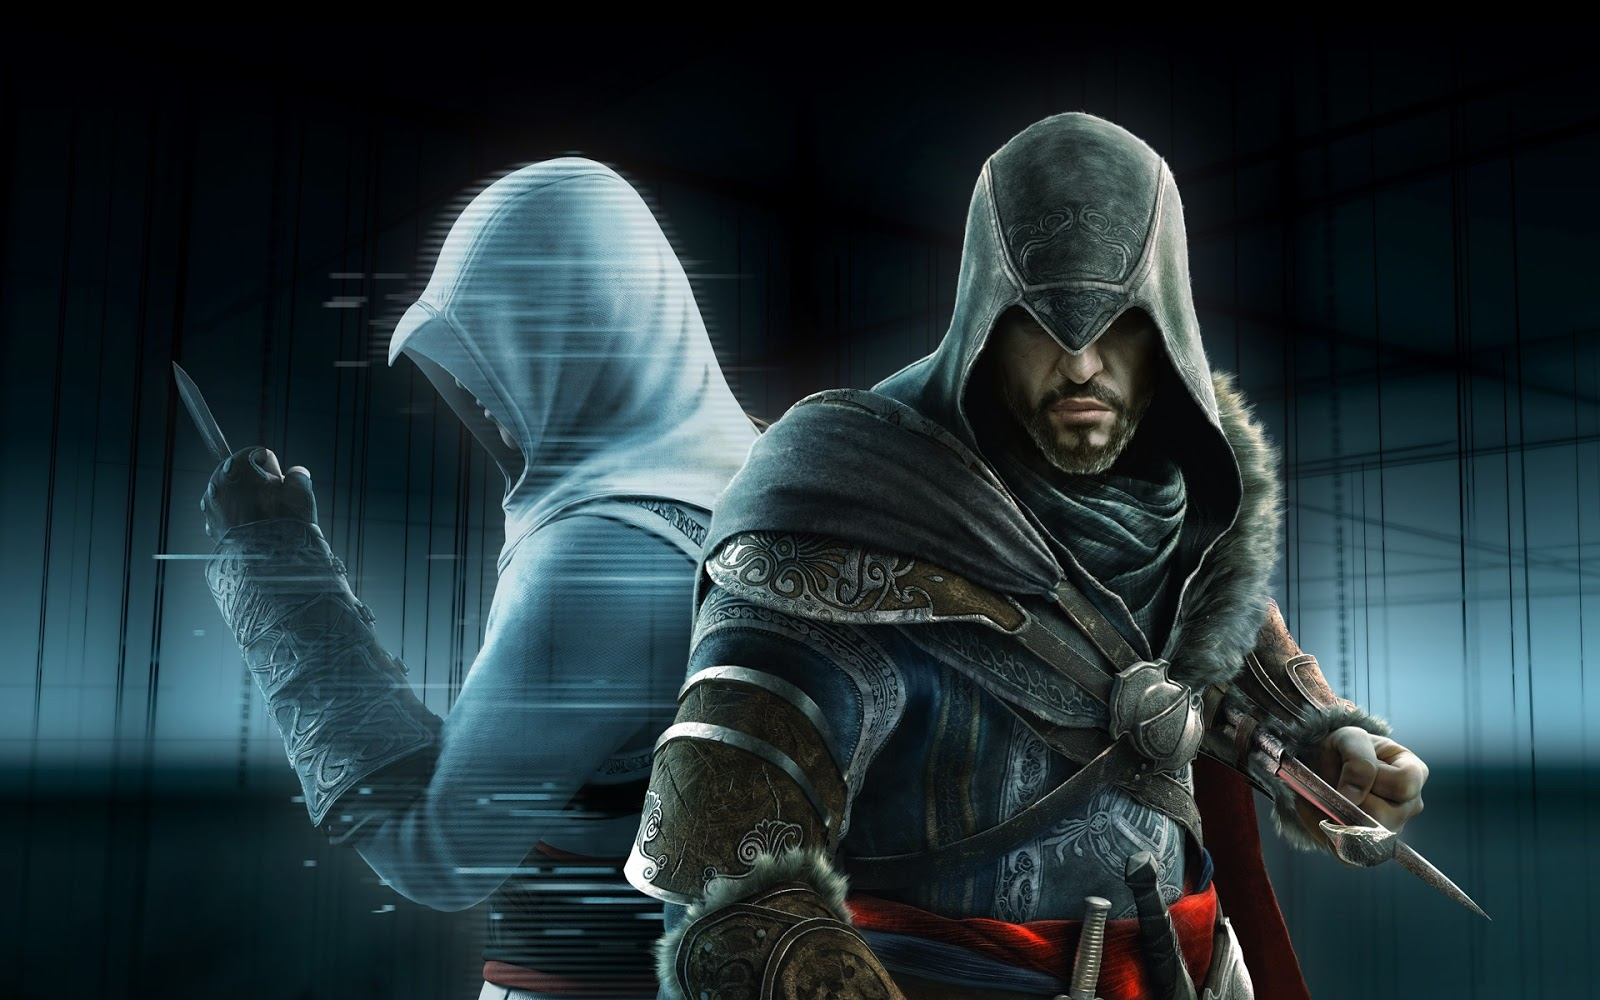 Game Wallpapers   Best HD Game Wallpapers 2013 1600x1000